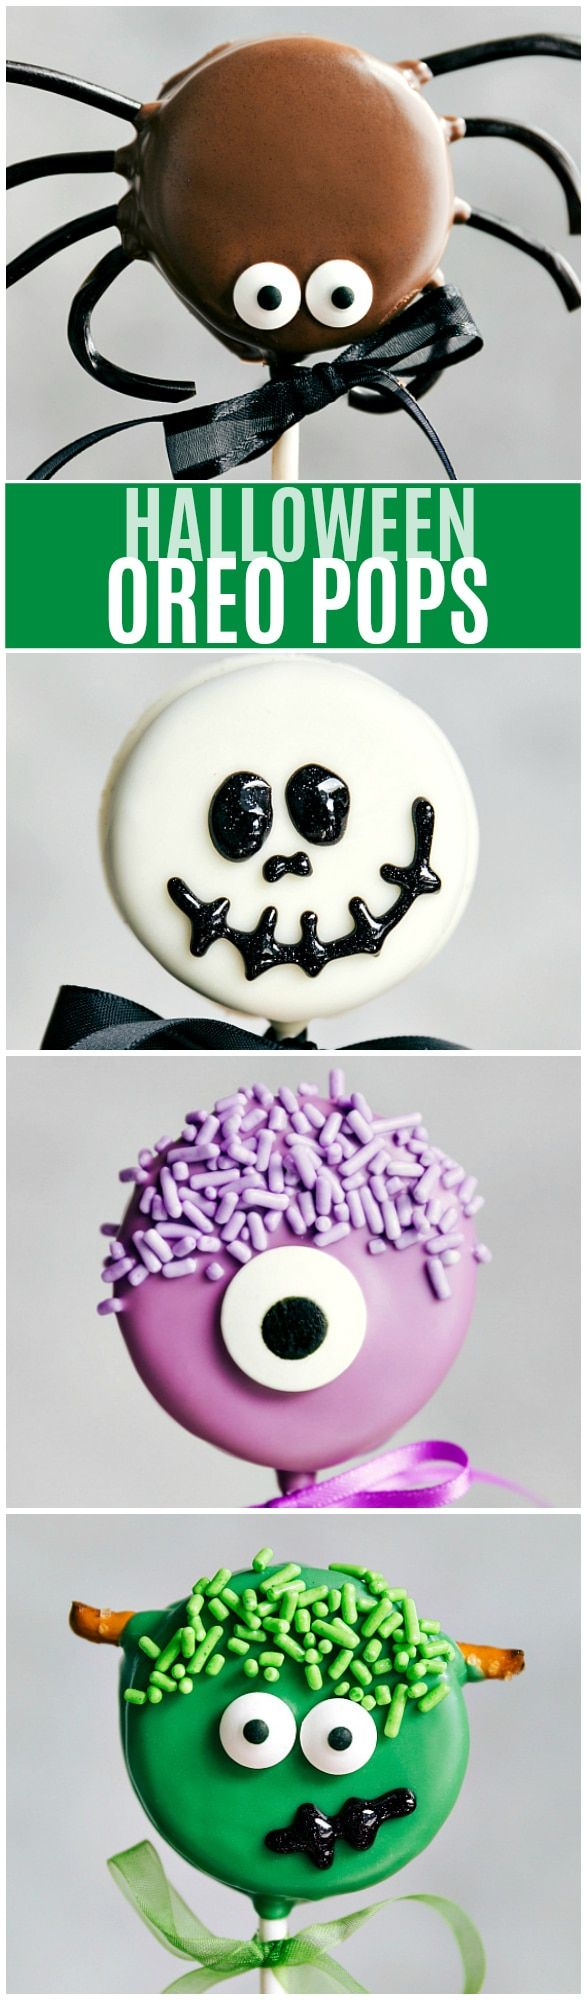 Il Cutest (e super semplice) Oreo Pops decorato per Halloween - Spider Oreo Pops, Skeleton Oreo Pops, Frankenstein Oreo Pops, e Monster Oreo Pops Leggi le recensioni rave !!  via chelseasmessyapron.com